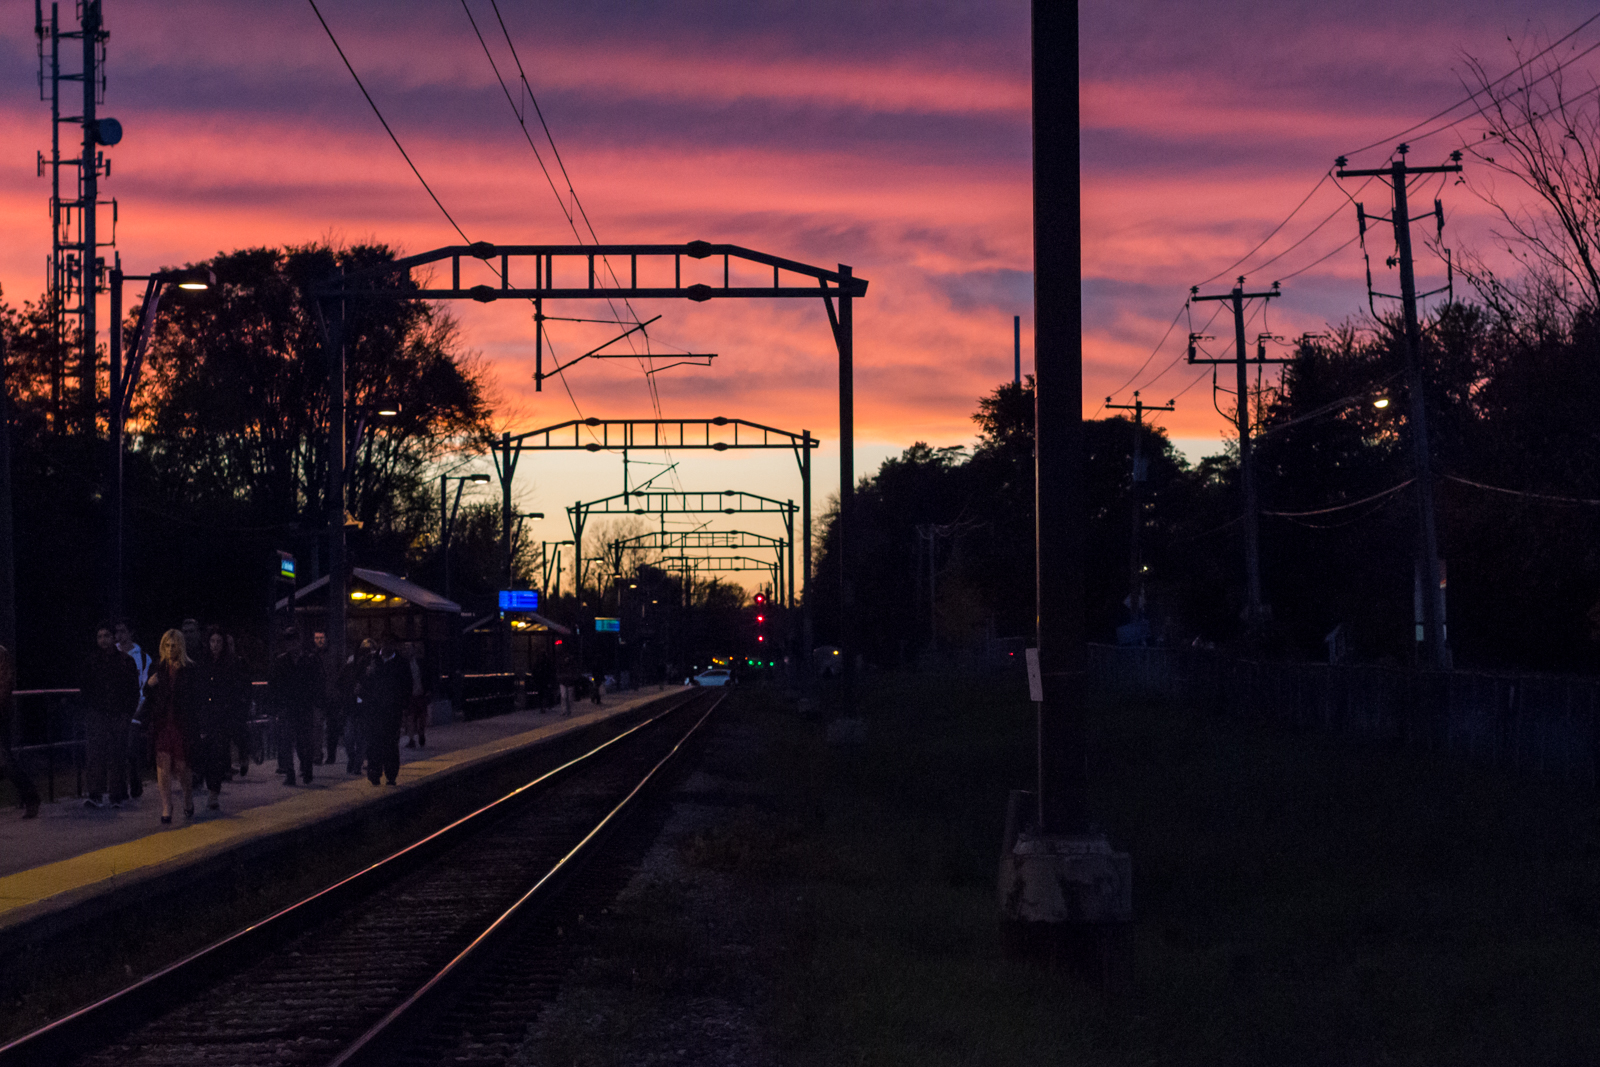 Sunset at the station